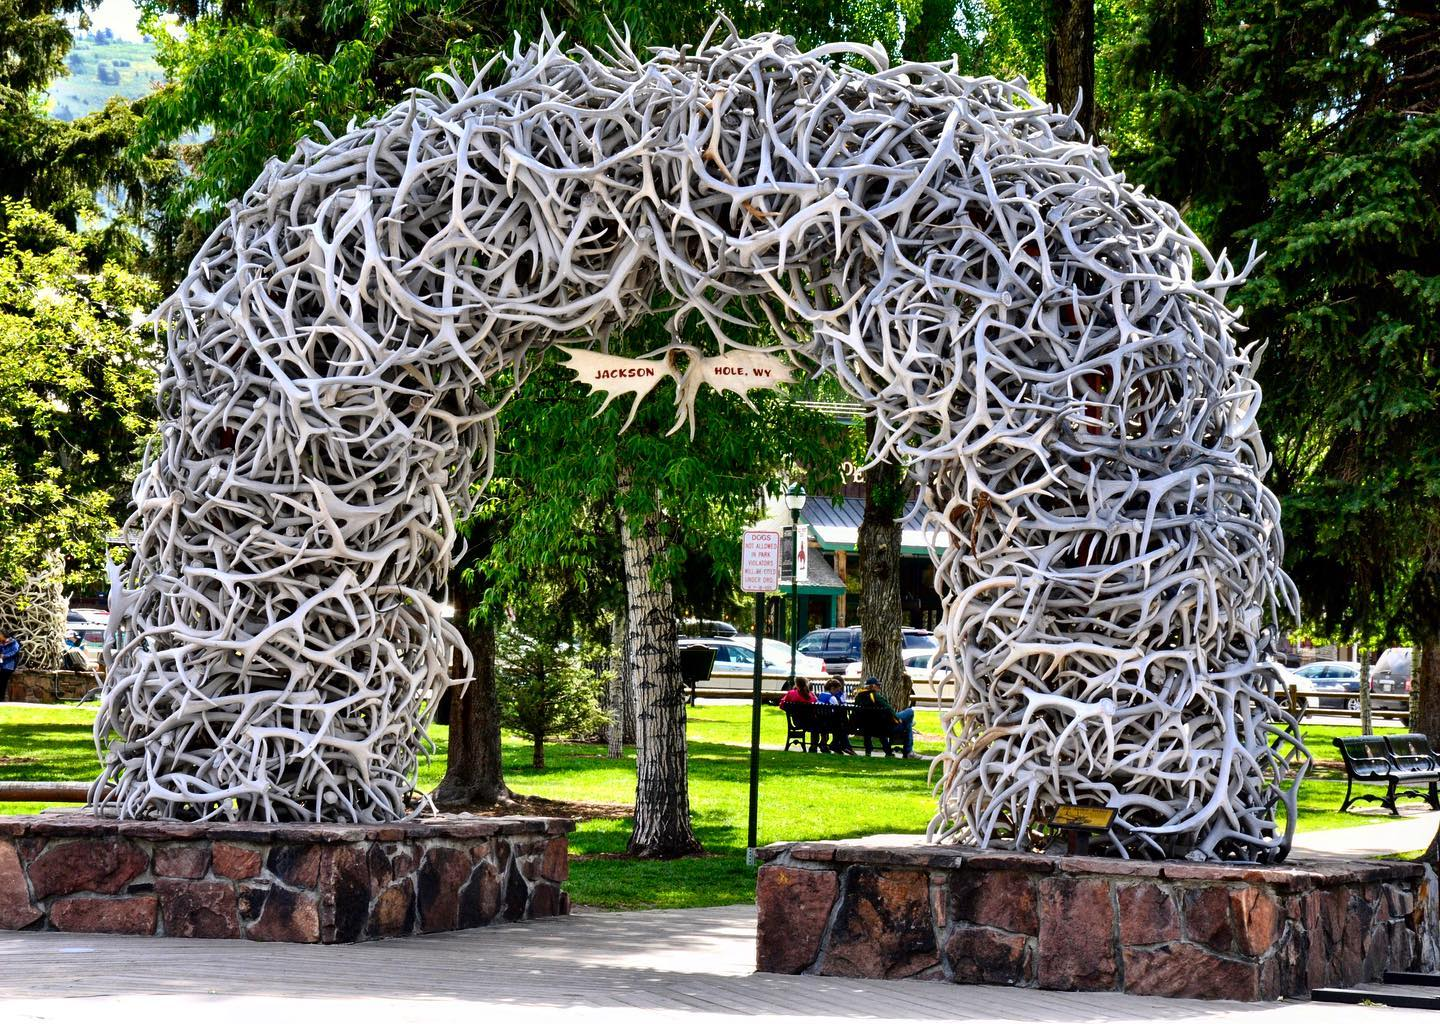 Elk Antler Arch, Jackson Hole, Wyoming  When you visit Jackson Hole be sure to visit downtown Jackson to see Town Square and the iconic elk antler arches. Four large arches of elk-antler curve over the square's four corner entrances.  #usa #usatravel #usatravels #usatrip #wyoming #wyominglife #jacksonwyoming #jacksonholewyoming #jacksonhole #jacksonholewy #elkantler #arch #elkantlerarch #roadtripusa #travelphotography #travelpics #travellover #travelcouple #travelwyoming #reisefotografie #reise #usareisen #usaliebe #travelblogger #reiseblogger #usablogger #instatraveling #instatravel #wanderlust #travelgram